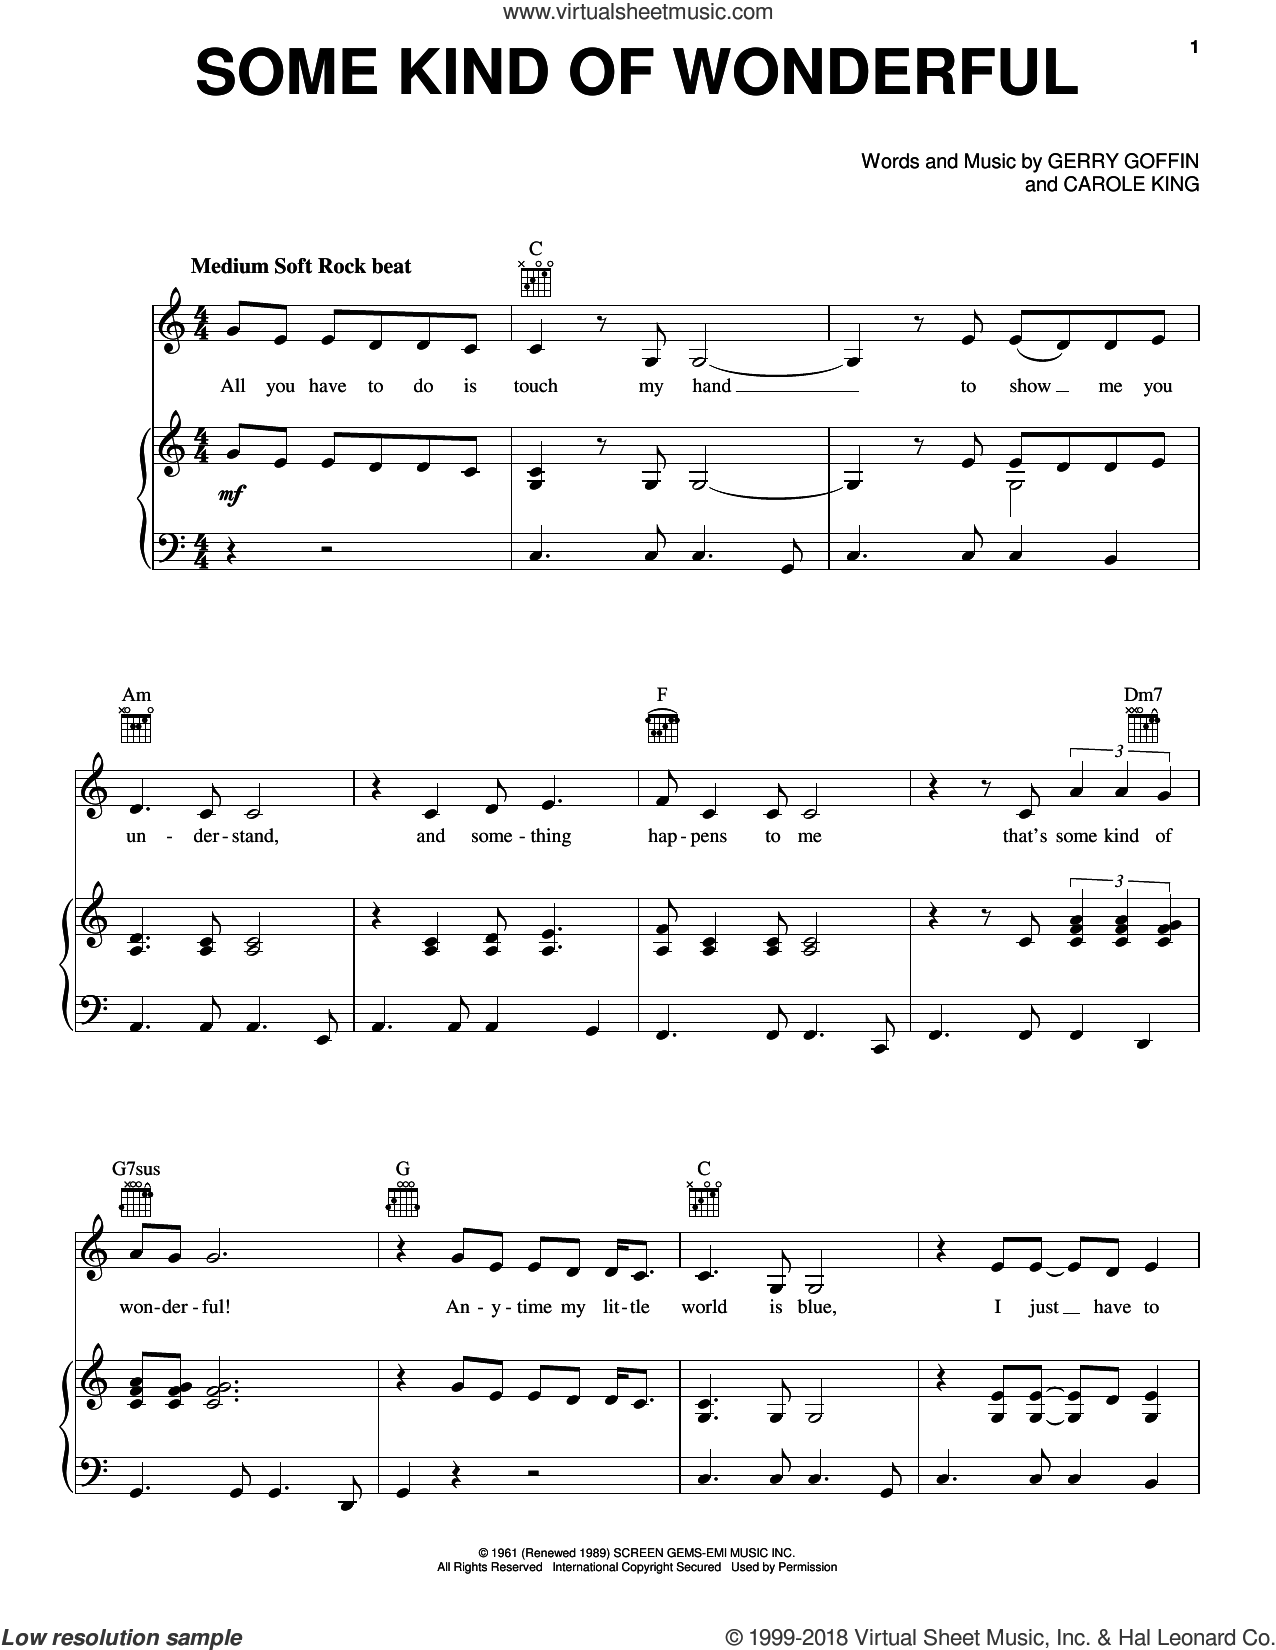 Some Kind Of Wonderful sheet music for voice, piano or guitar by Carole King and Gerry Goffin, intermediate skill level